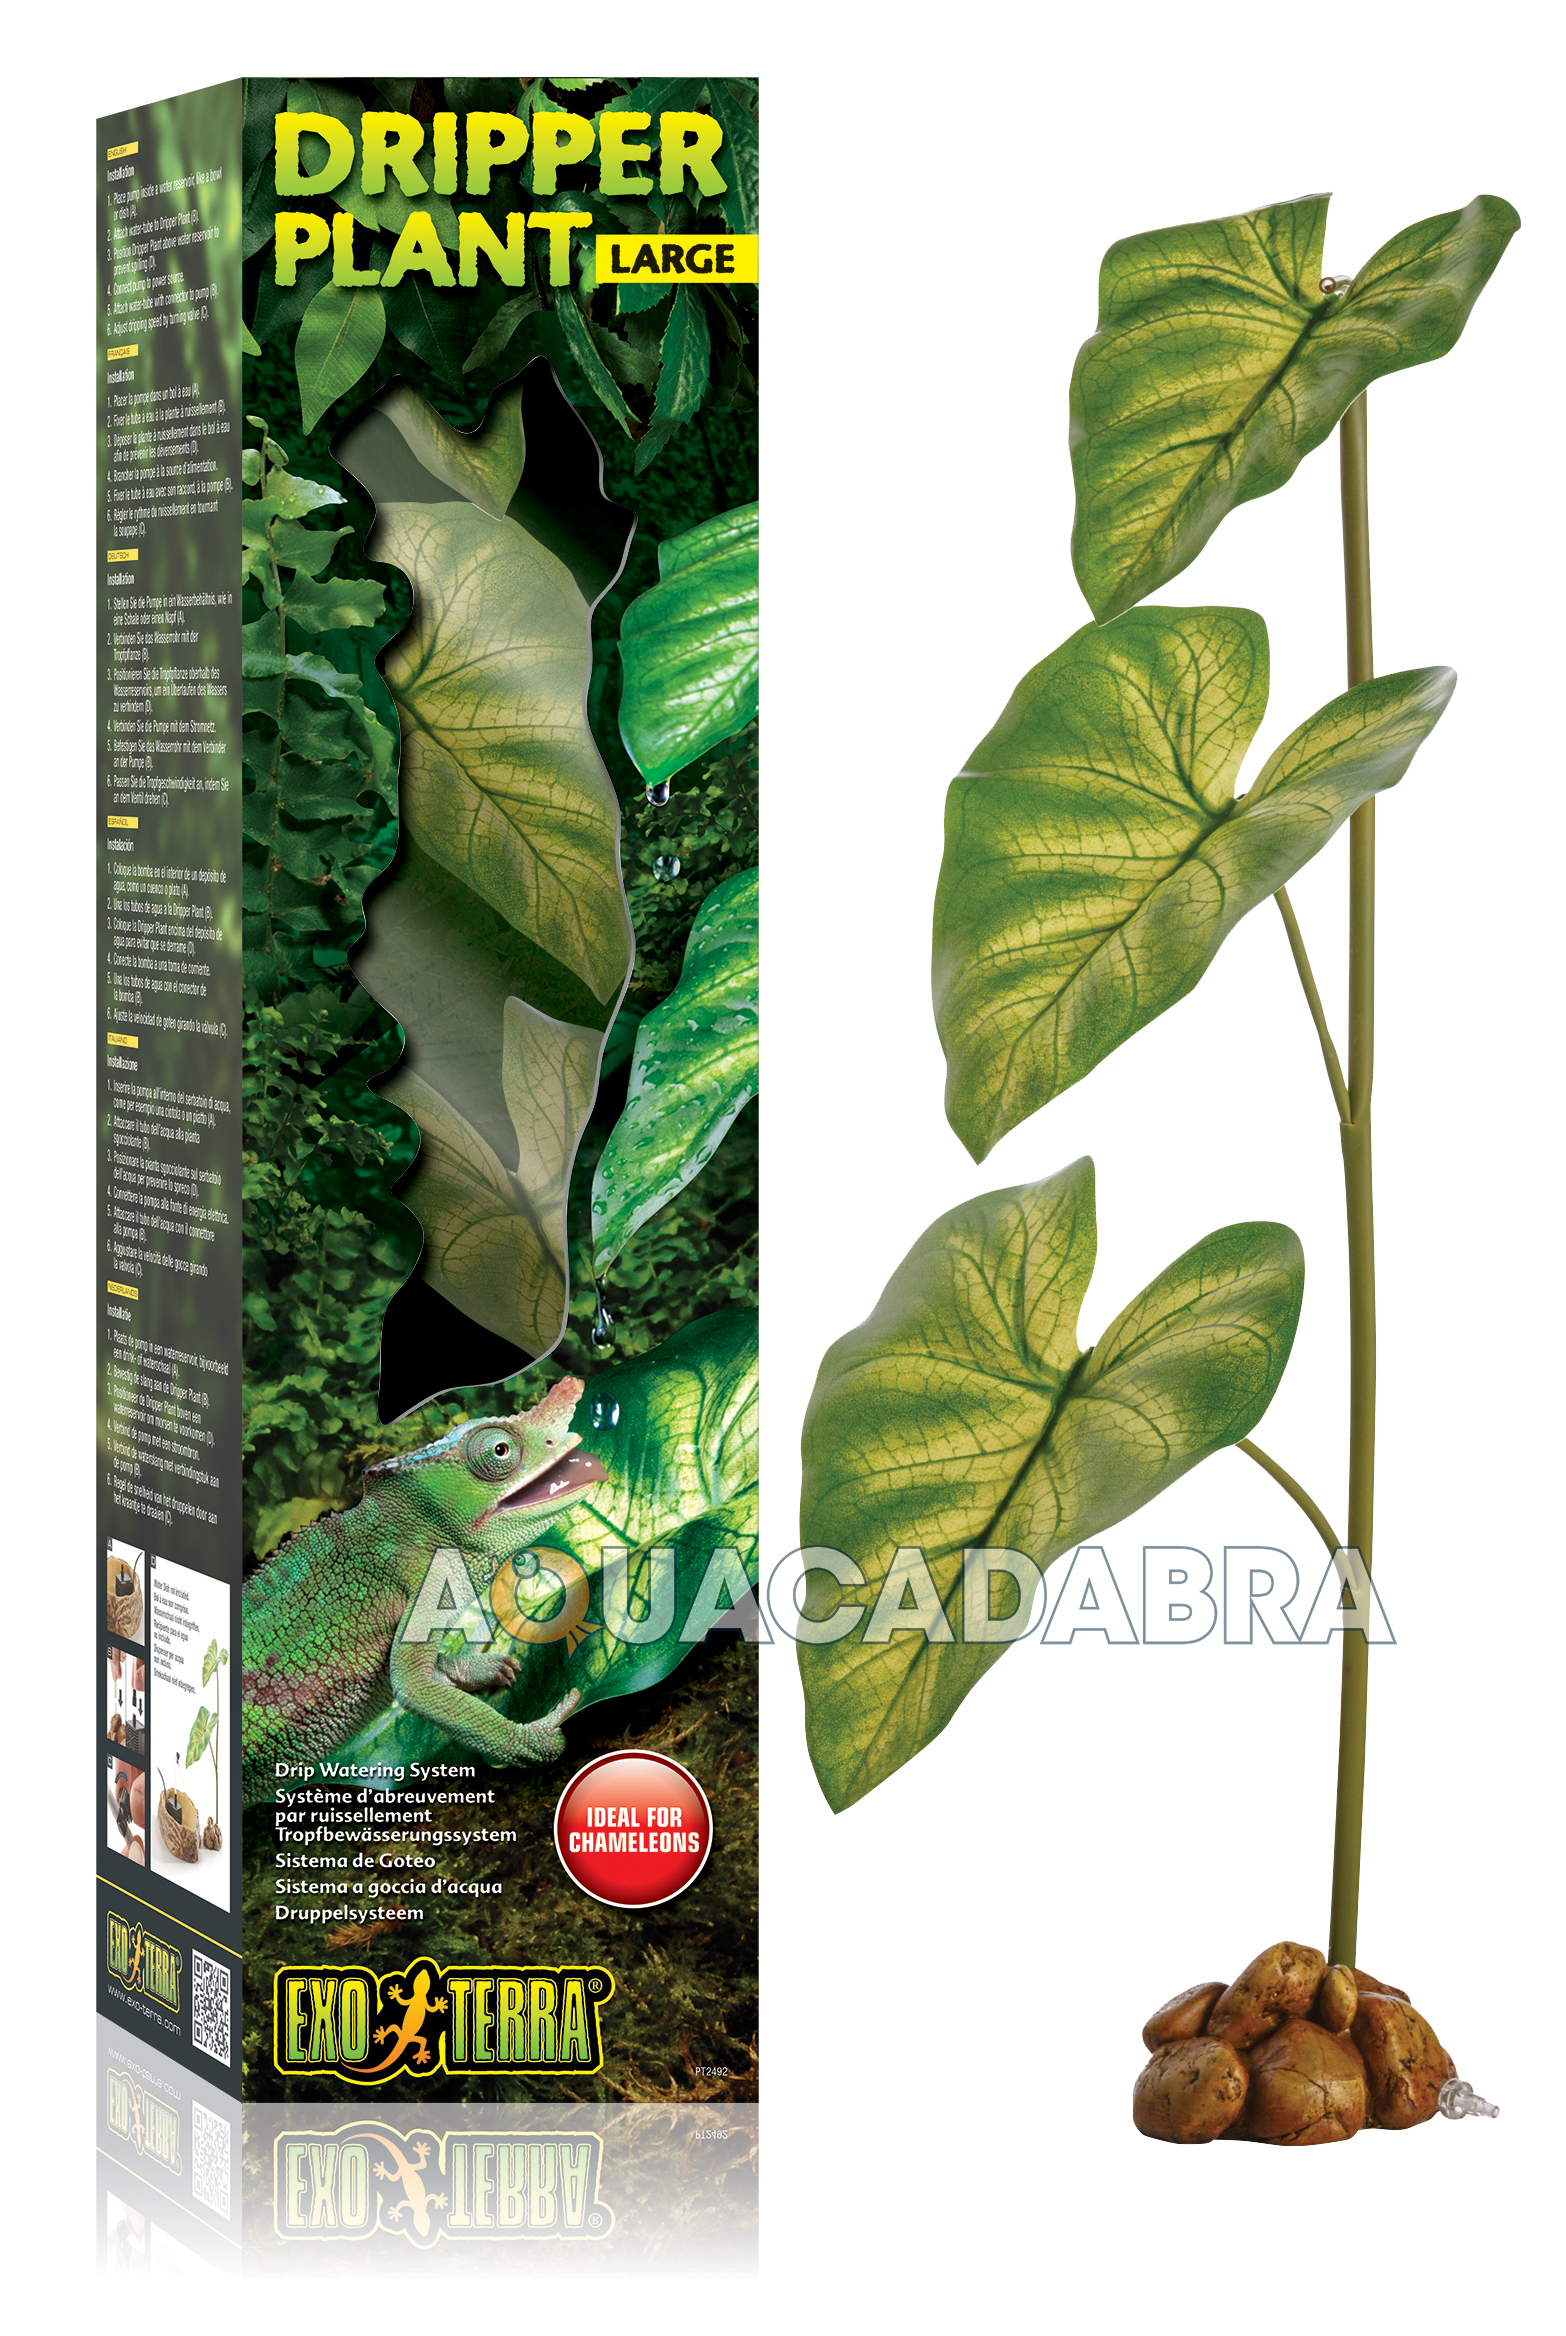 Exo Terra Dripper Plant Large Drip Watering System